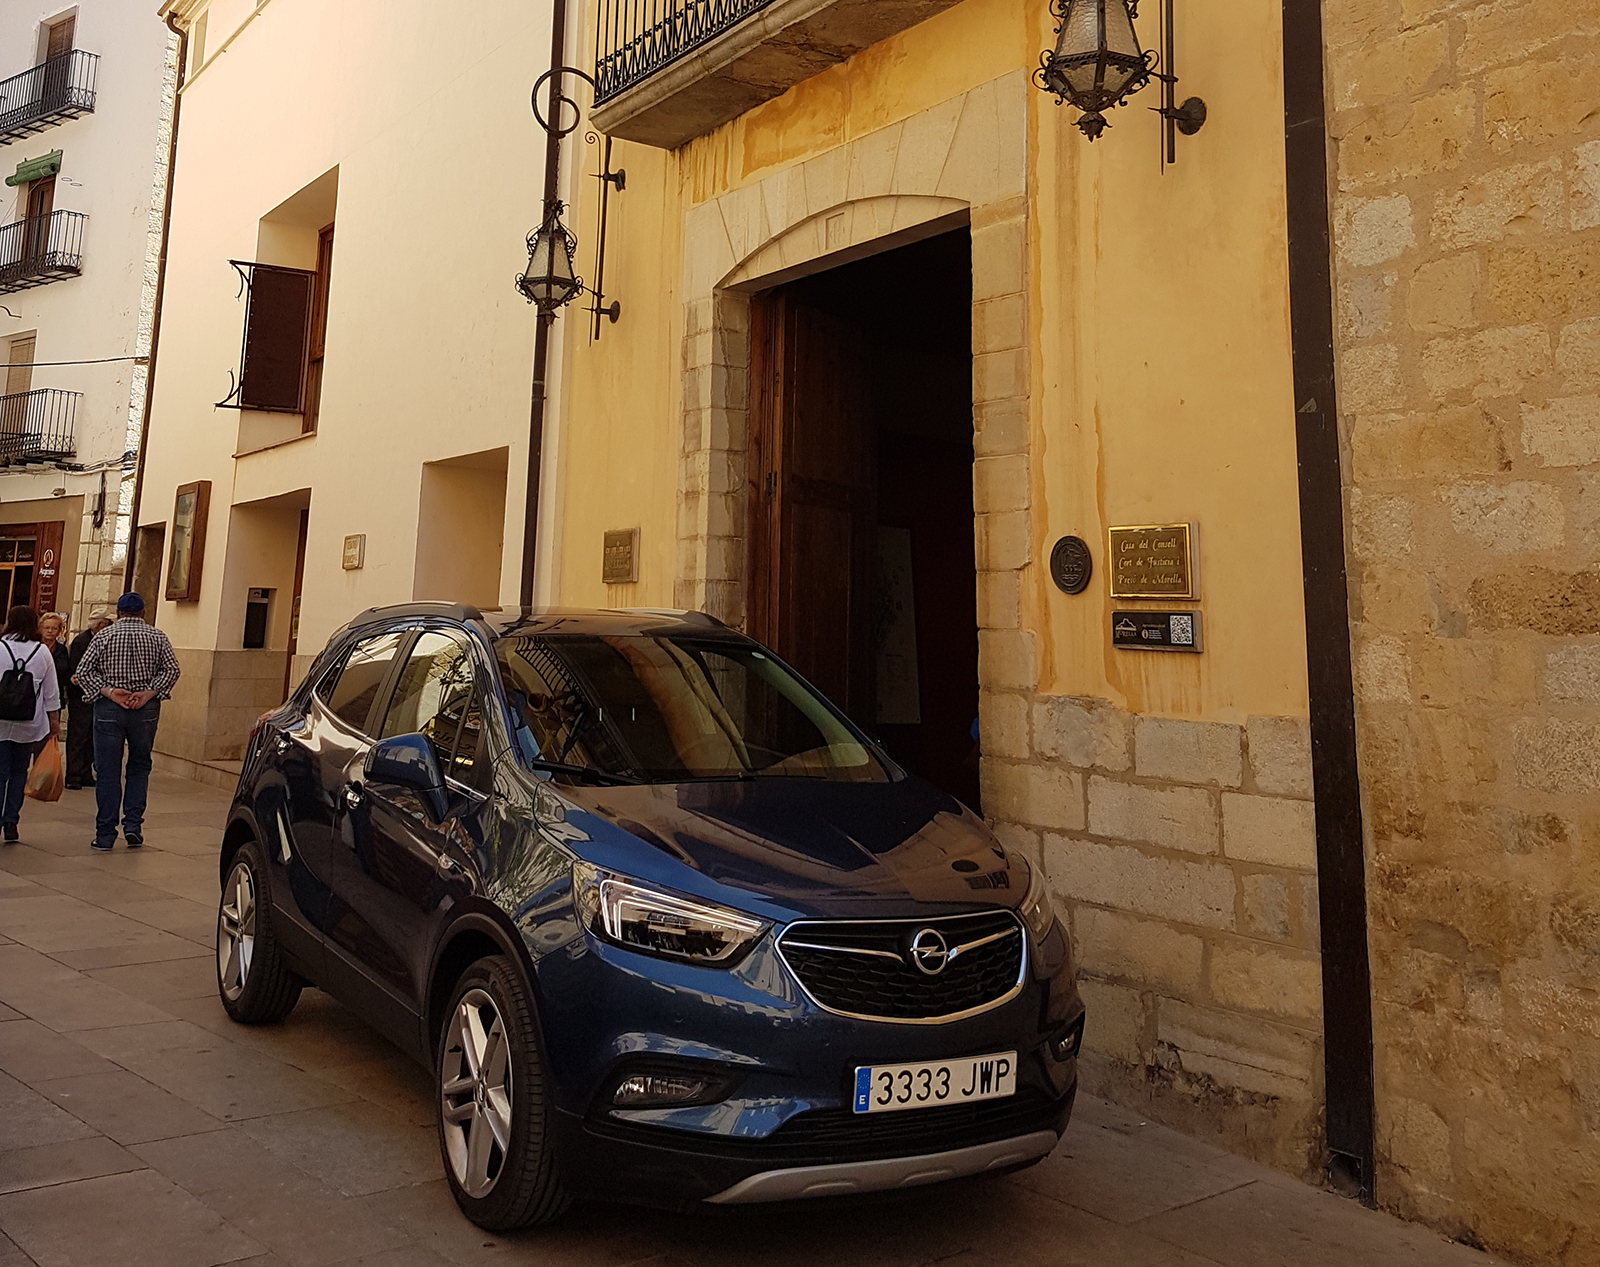 Morella Spain police escort Hertz car outside town hall